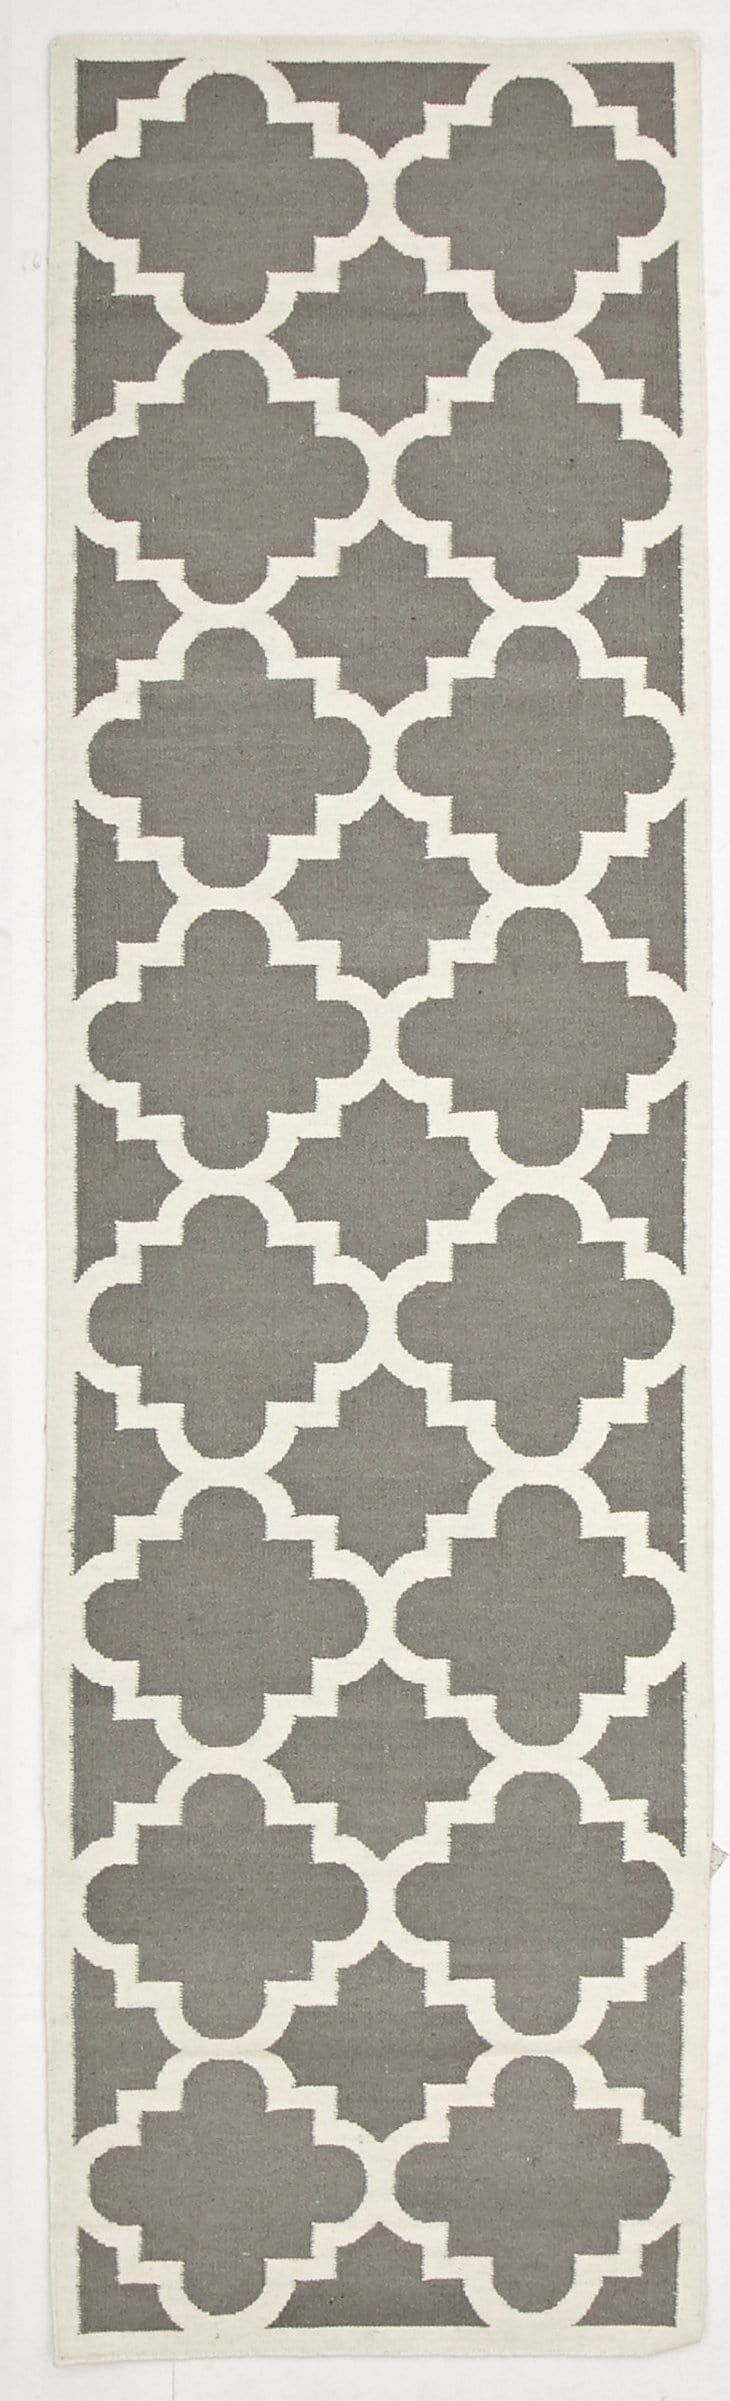 flat tres conversation rug pinterest on blue weave indian dhurrie pieces best rugs mkoclar images